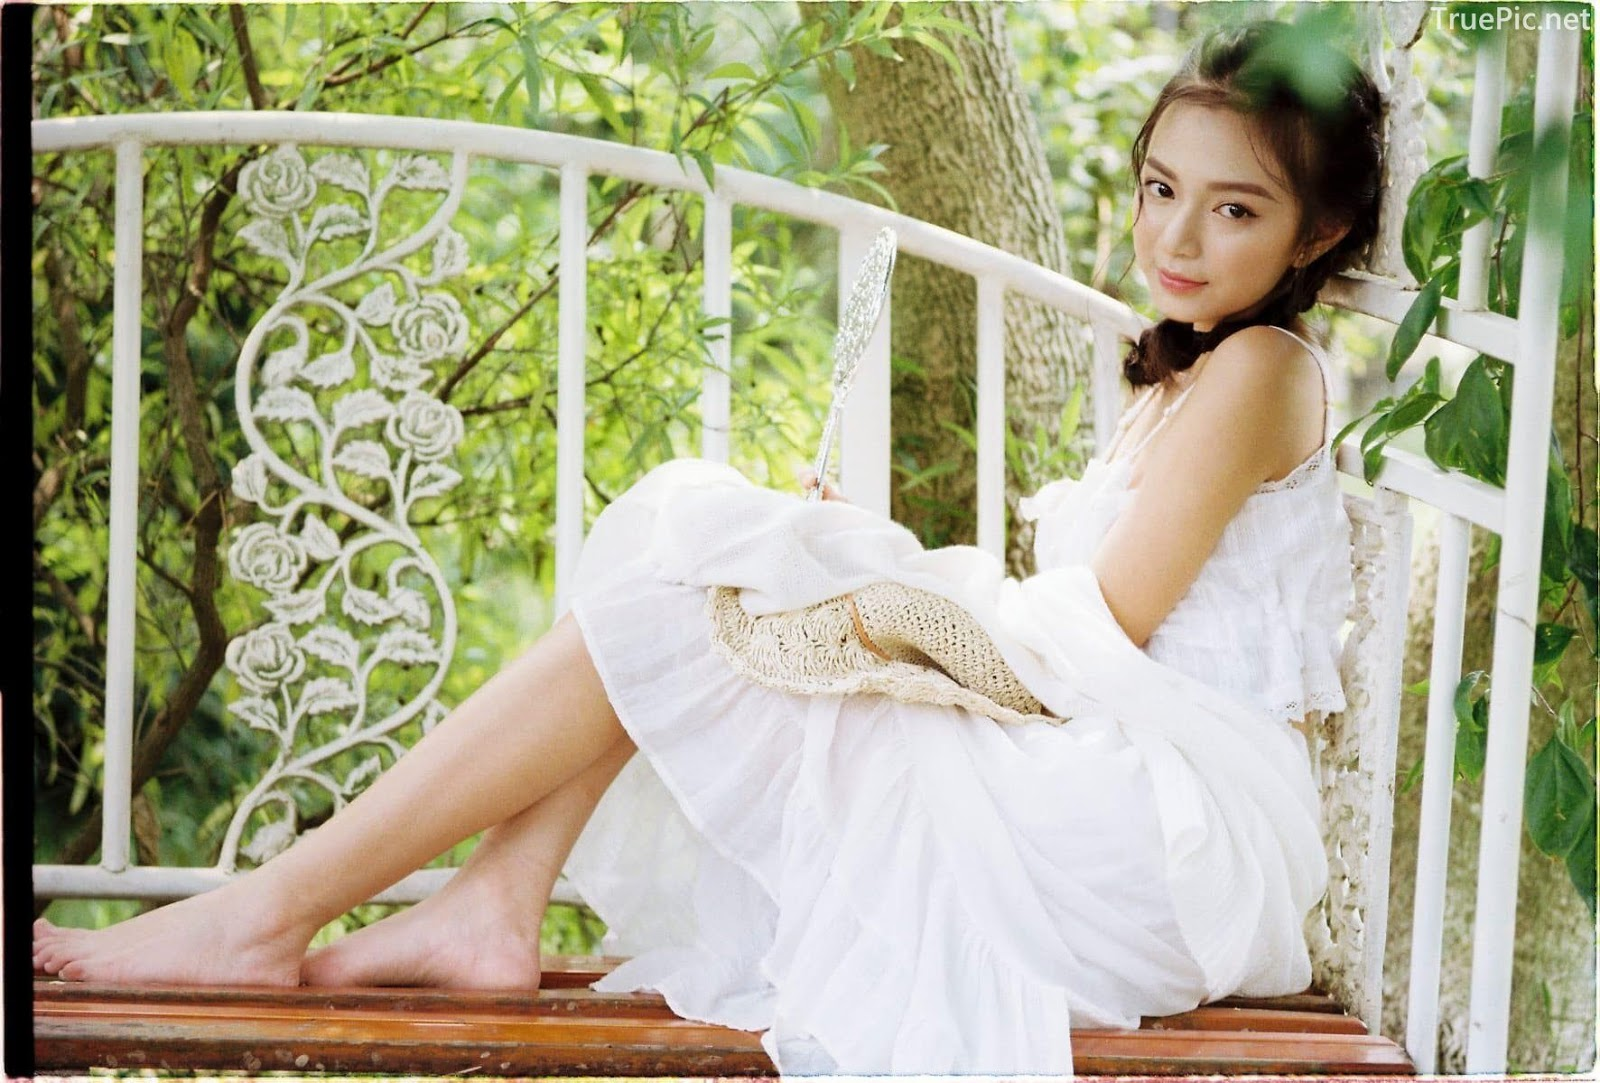 Vietnamese Sexy Model - Vu Ngoc Kim Chi - Beautiful in white - TruePic.net- Picture 36